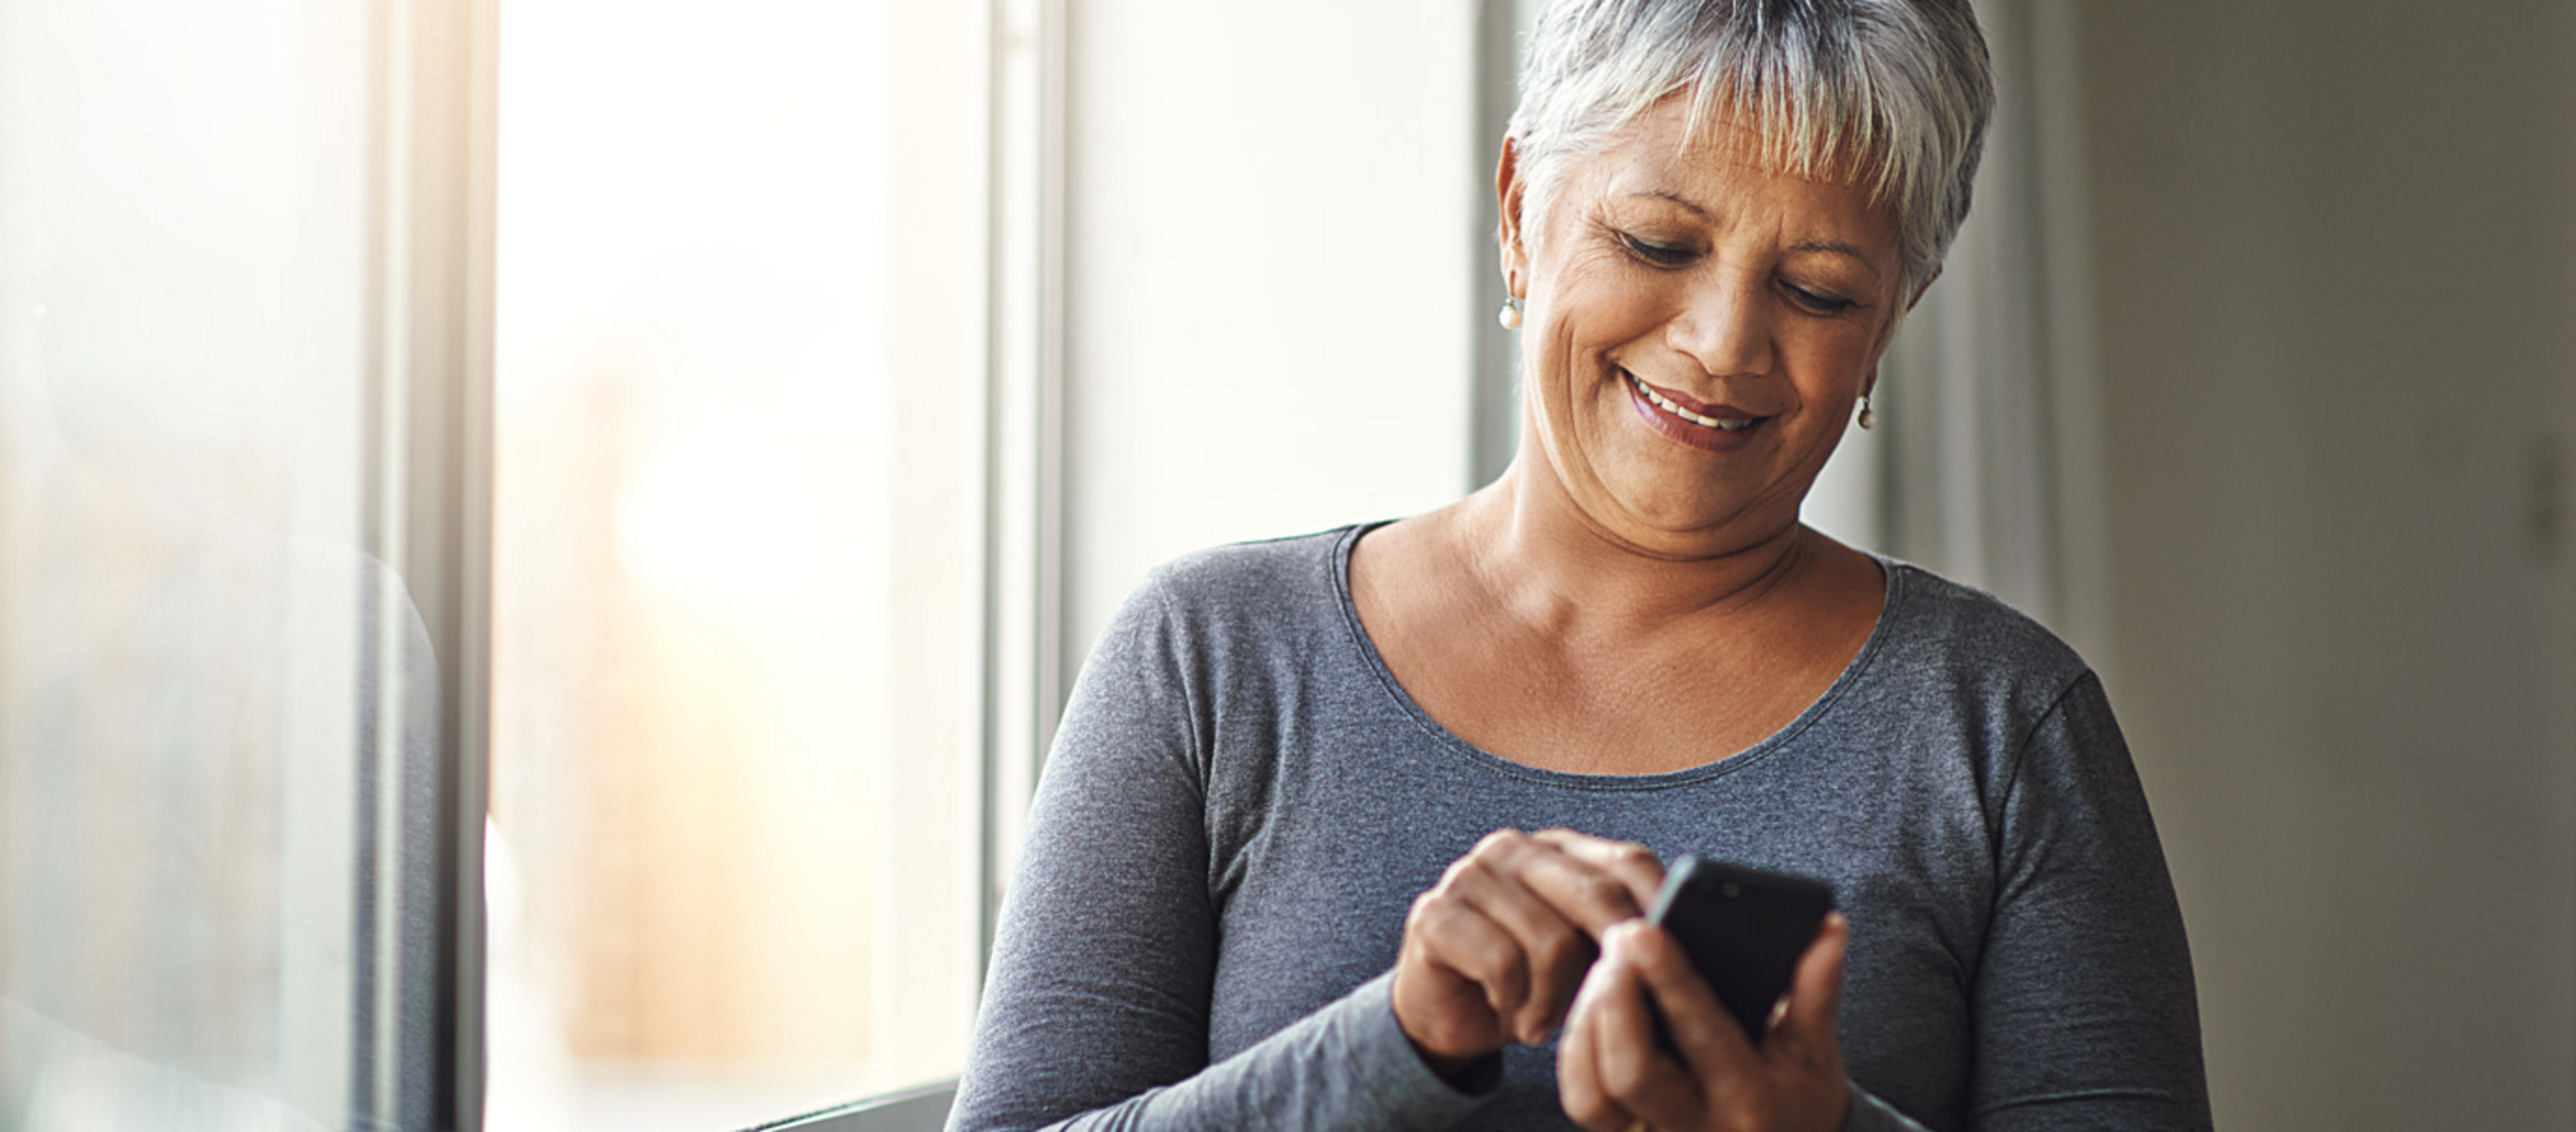 Older woman with short gray hair smiles while scrolling on her cell phone